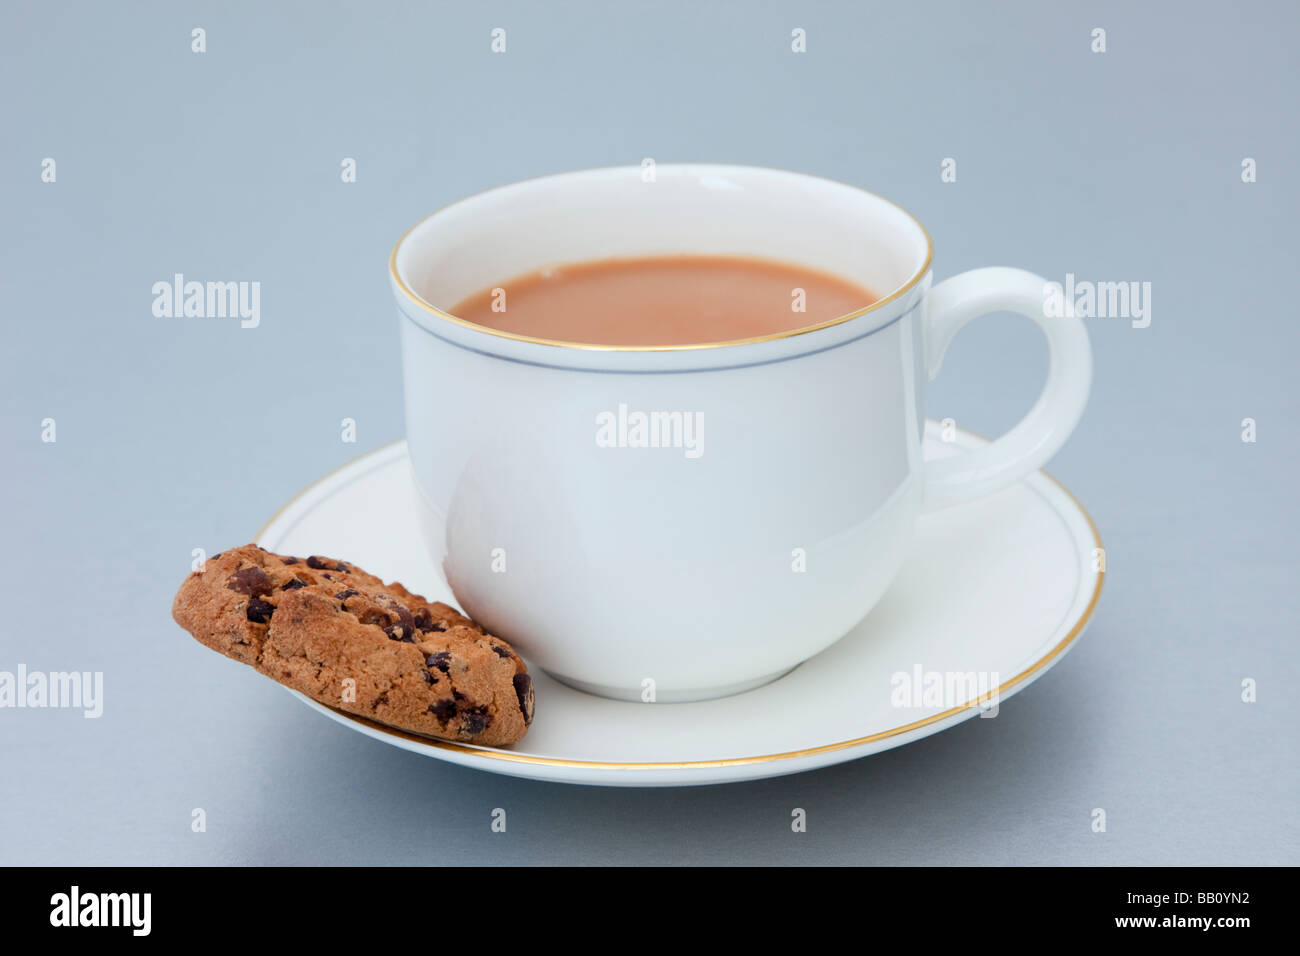 White cup of English tea and a chocolate chip biscuit in a saucer on a plain backdrop. England UK Britain - Stock Image